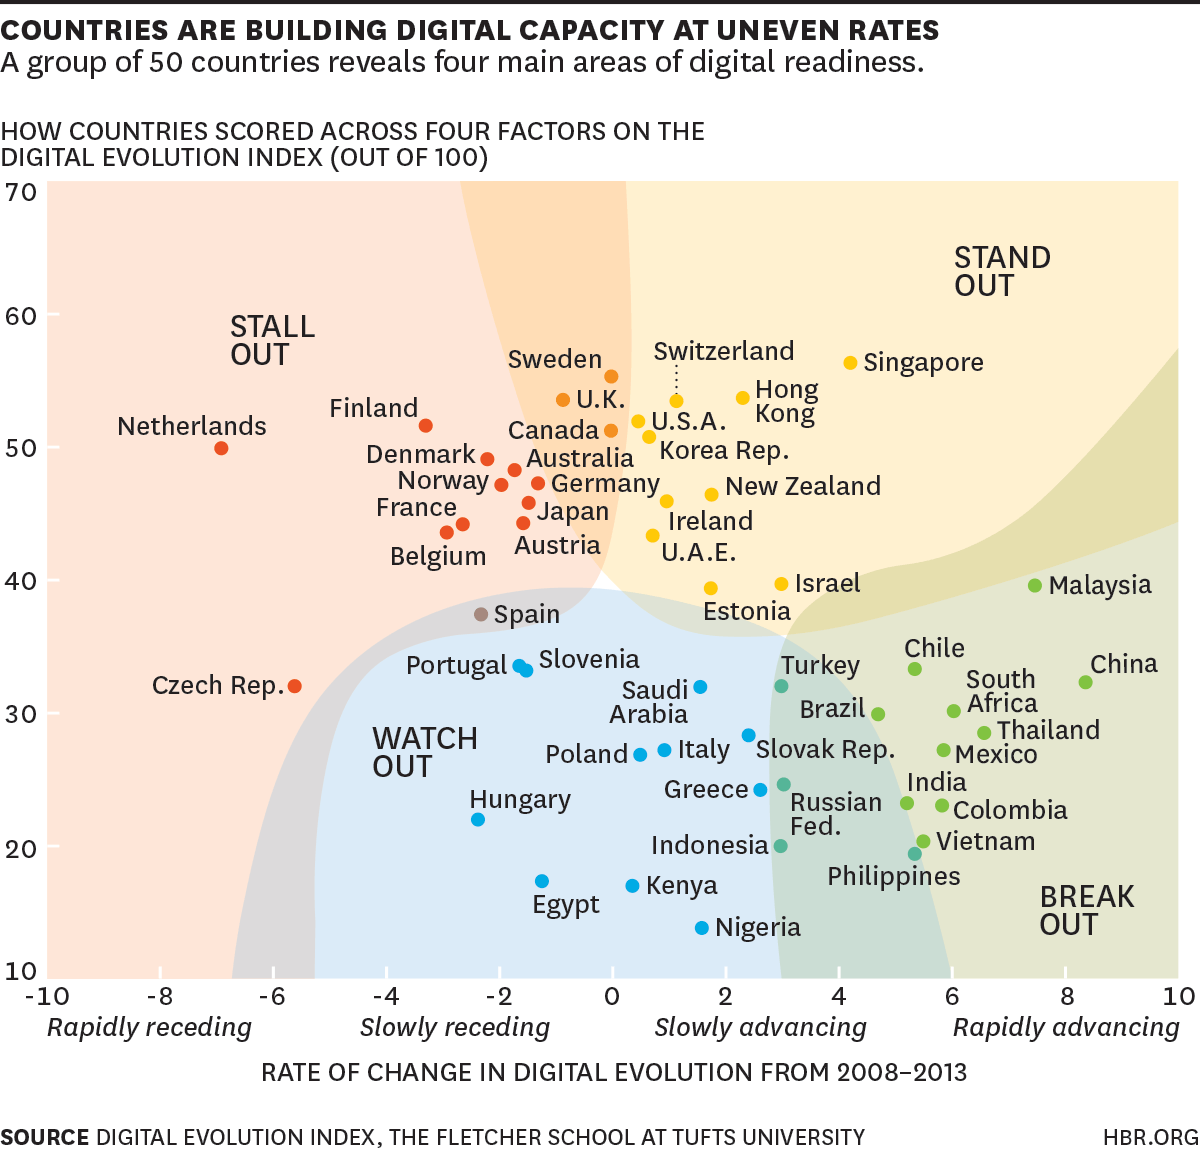 https://hbr.org/2015/02/where-the-digital-economy-is-moving-the-fastest#b03g06t20w15